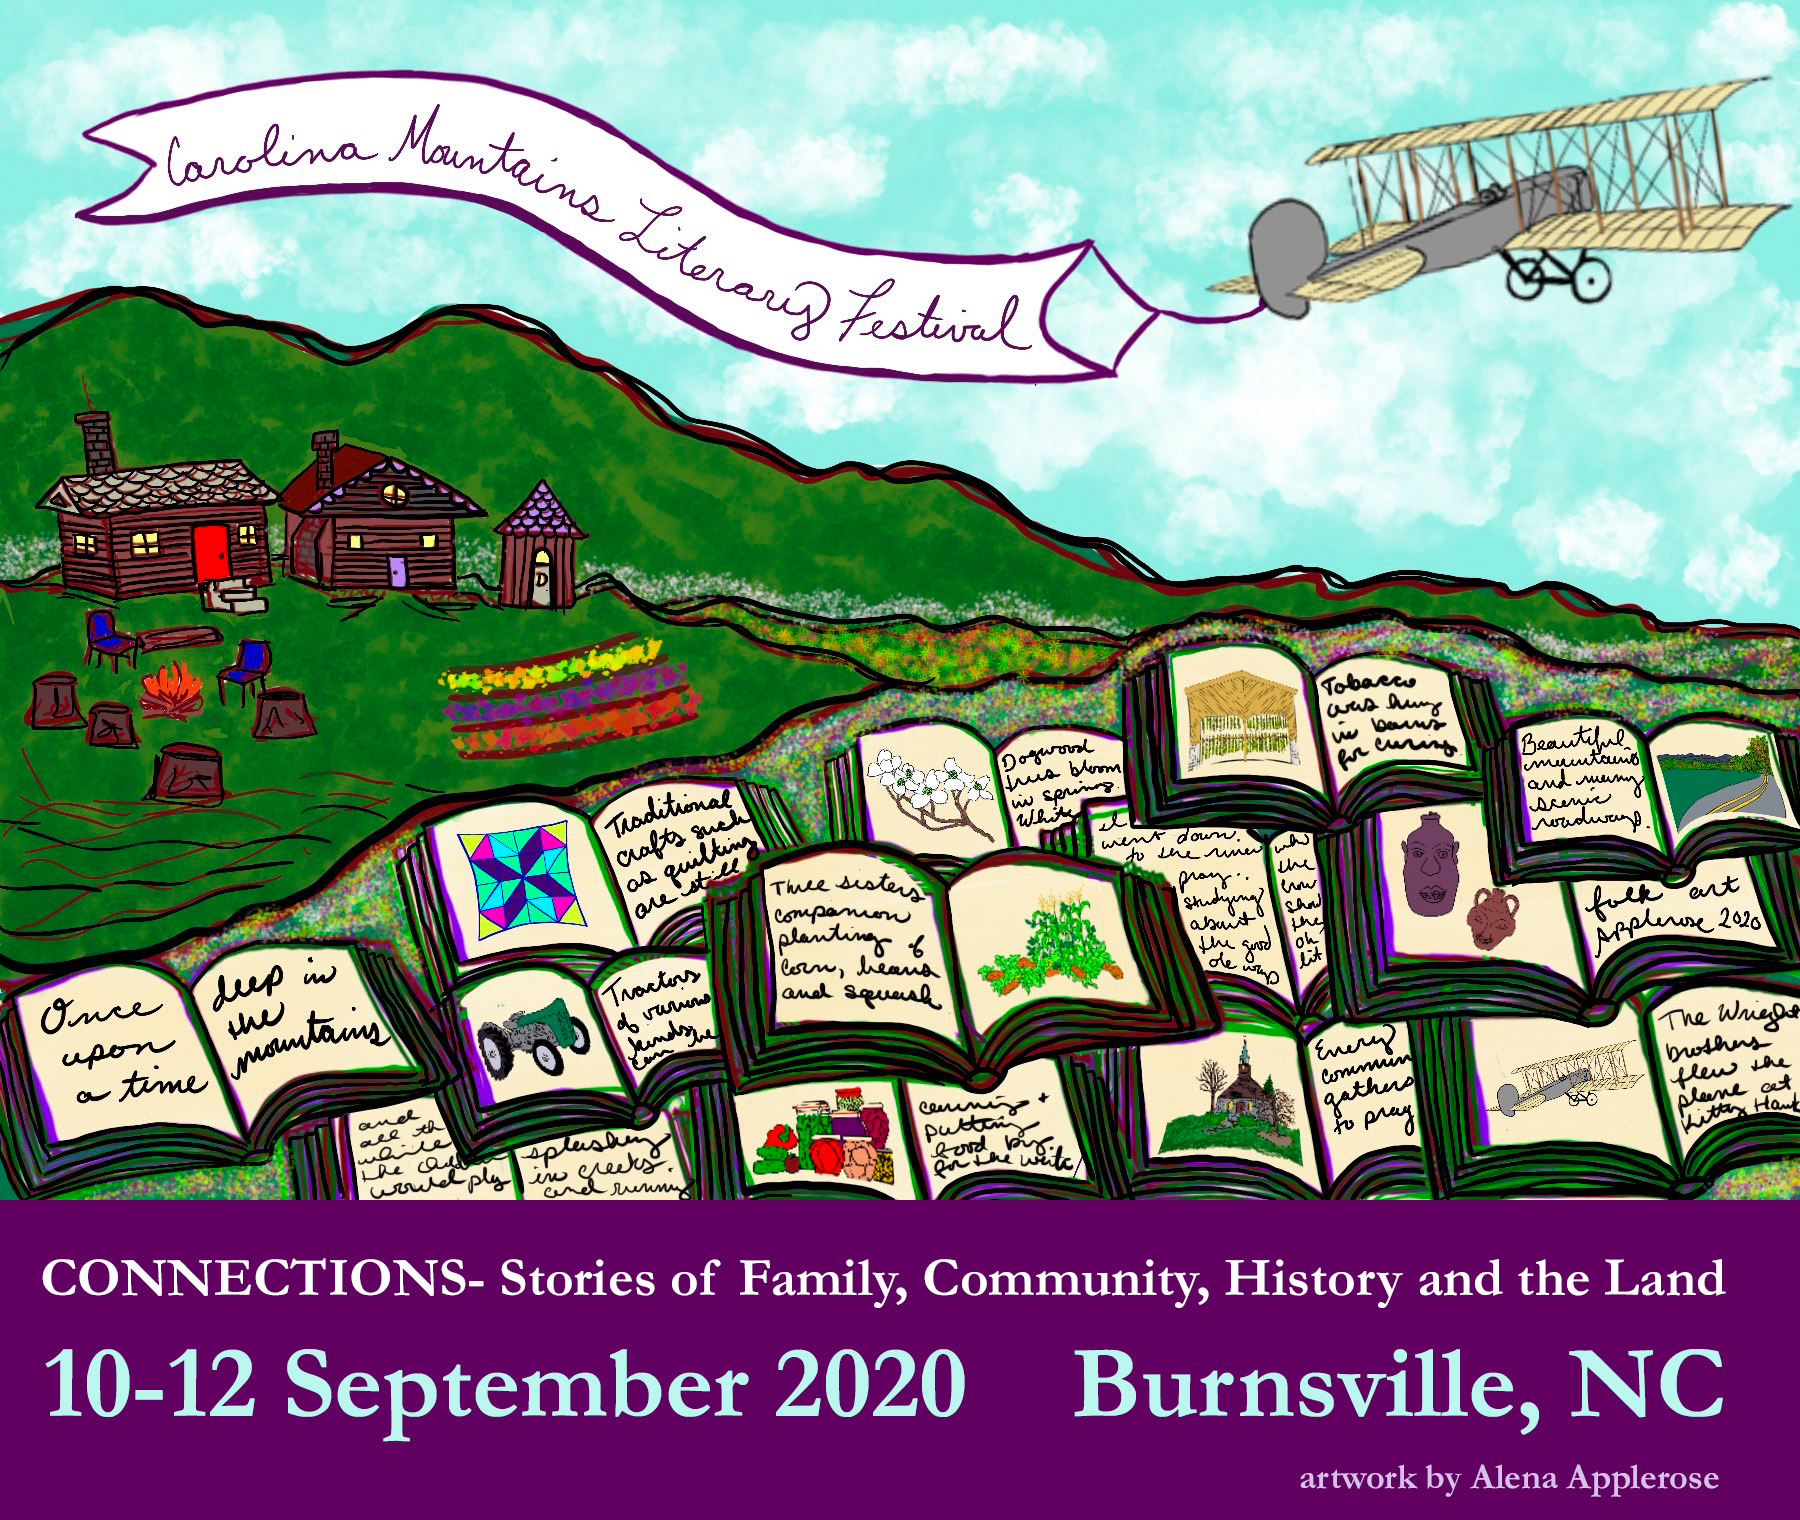 Artwork for the 202 Carolina Mountains Literary Festival